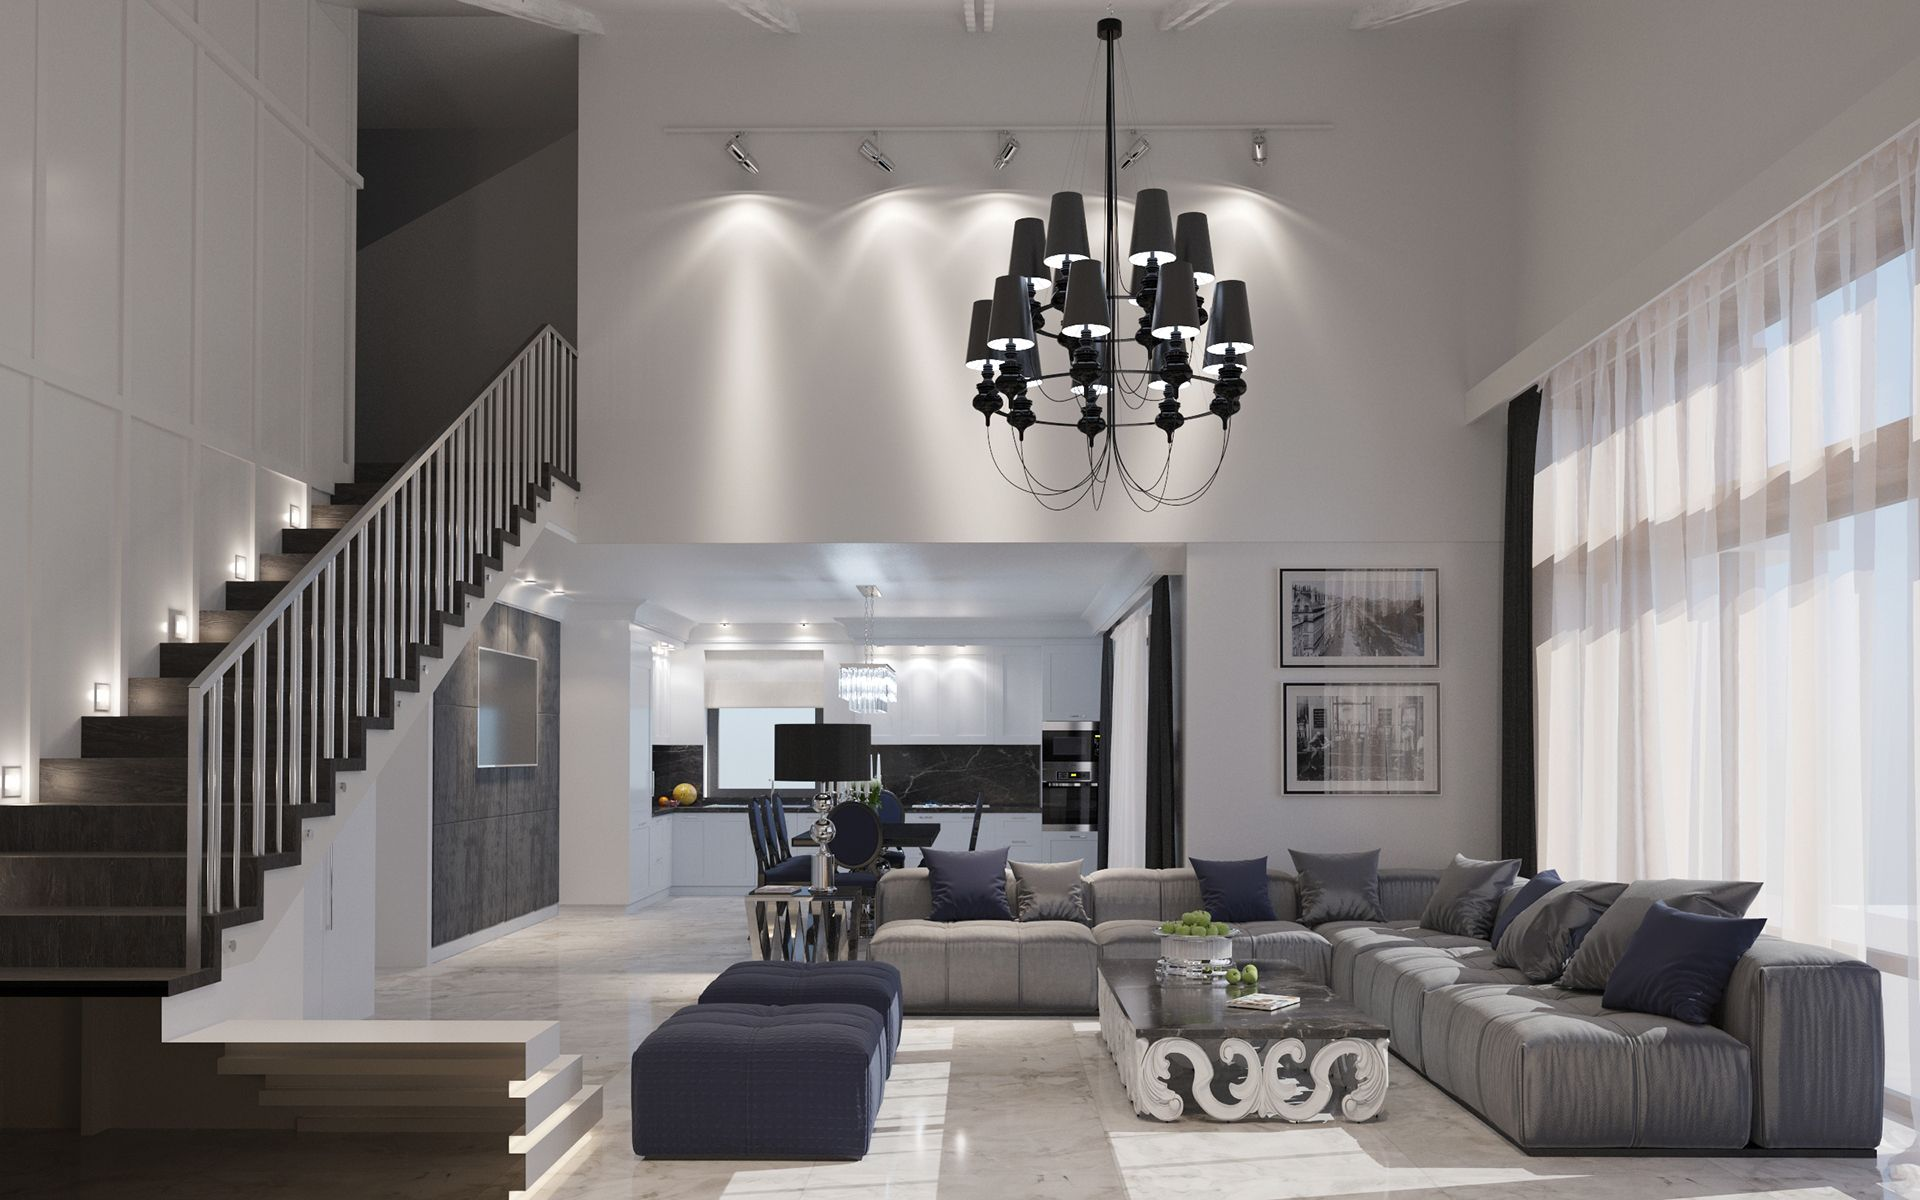 Types Of Spacious Modern Living Room Designs Which Arranged With Luxury And Gorgeous Interior Design Ideas In It Luxury Living Room Luxury Living Room Decor Luxury Living Room Designs Living room ideas luxury